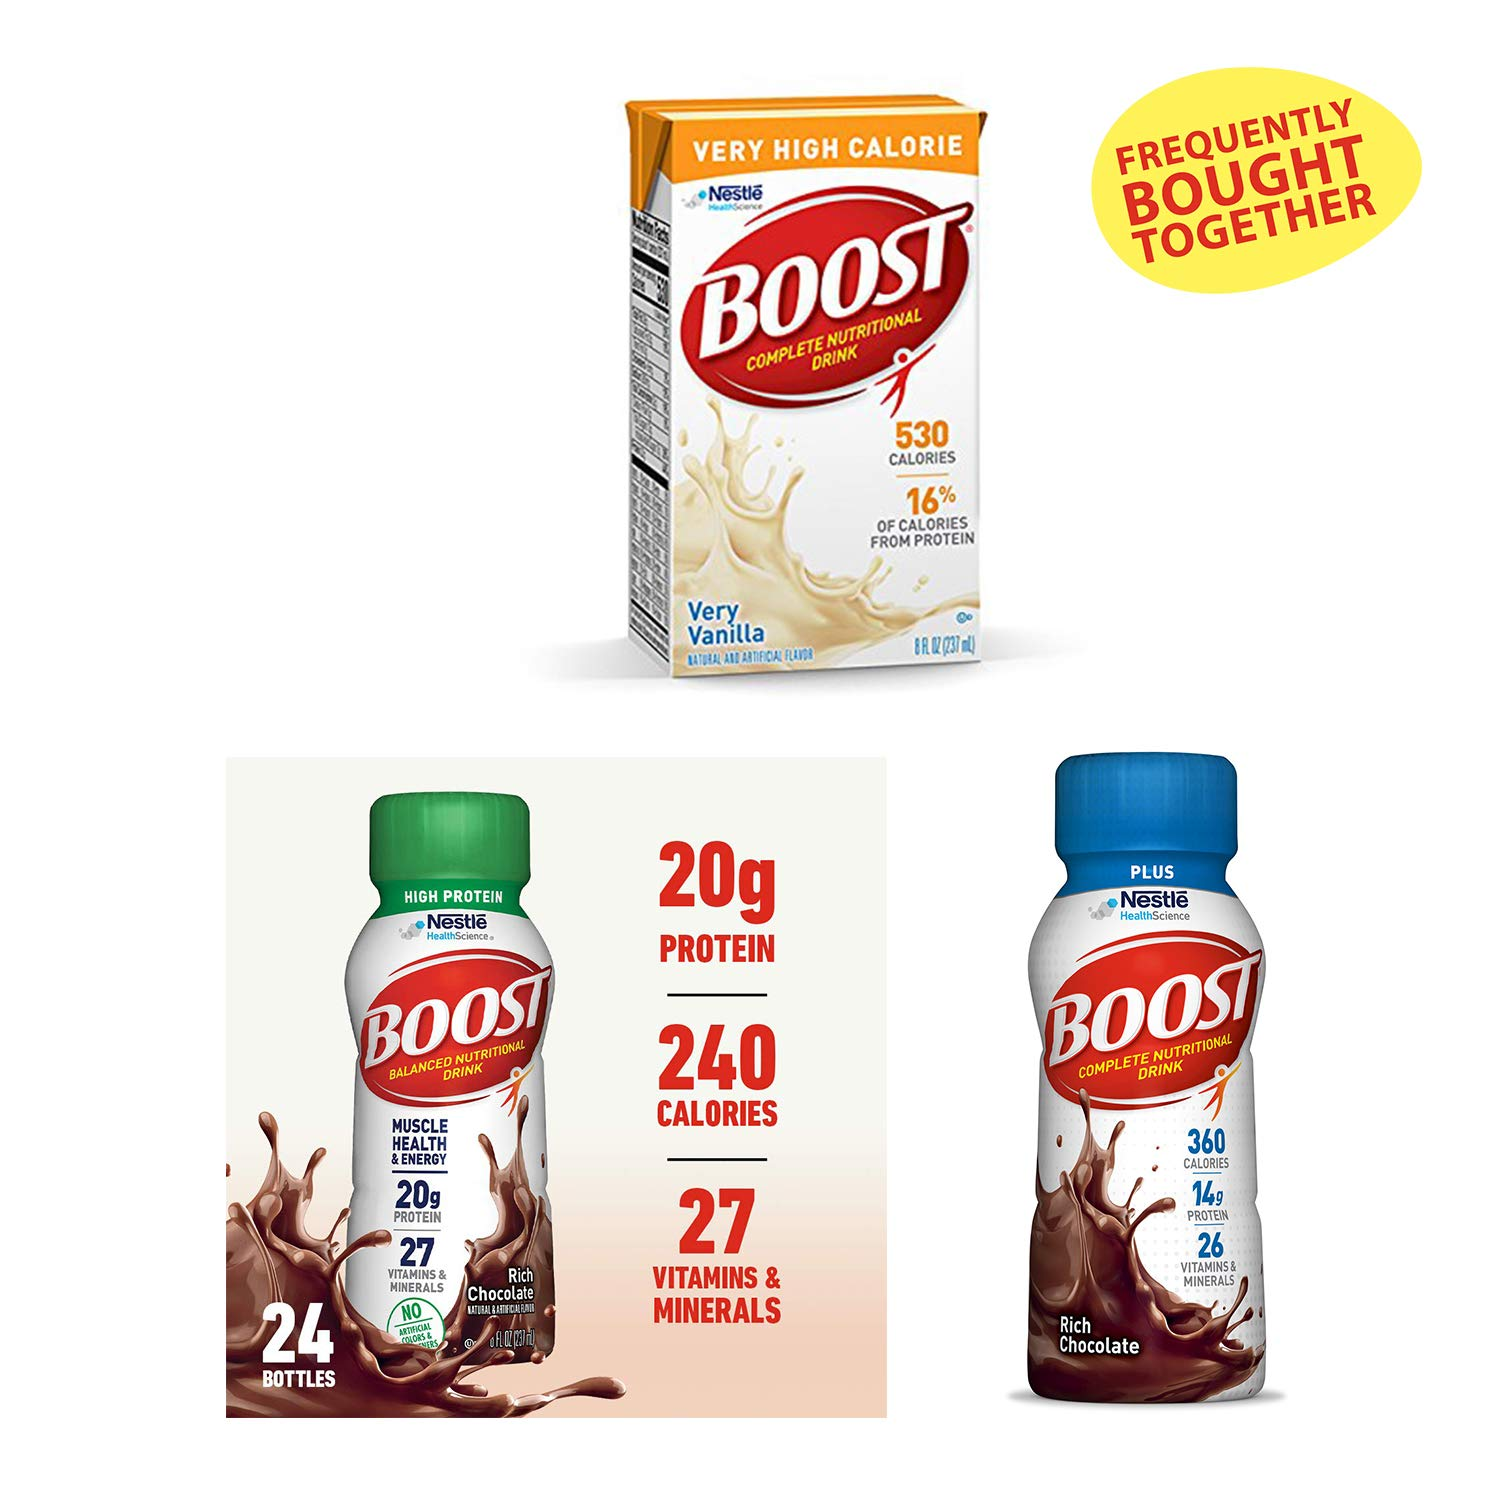 Boost Complete Nutritional Drink, Rich Chocolate - Plus (8 fl oz Bottle, 24 Pack), High Protein (8 fl oz Bottle, 24 Pack) and VHC Very High Calorie (Very Vanilla, 8 fl oz Box, 27 Pack) by Boost Nutritional Drinks